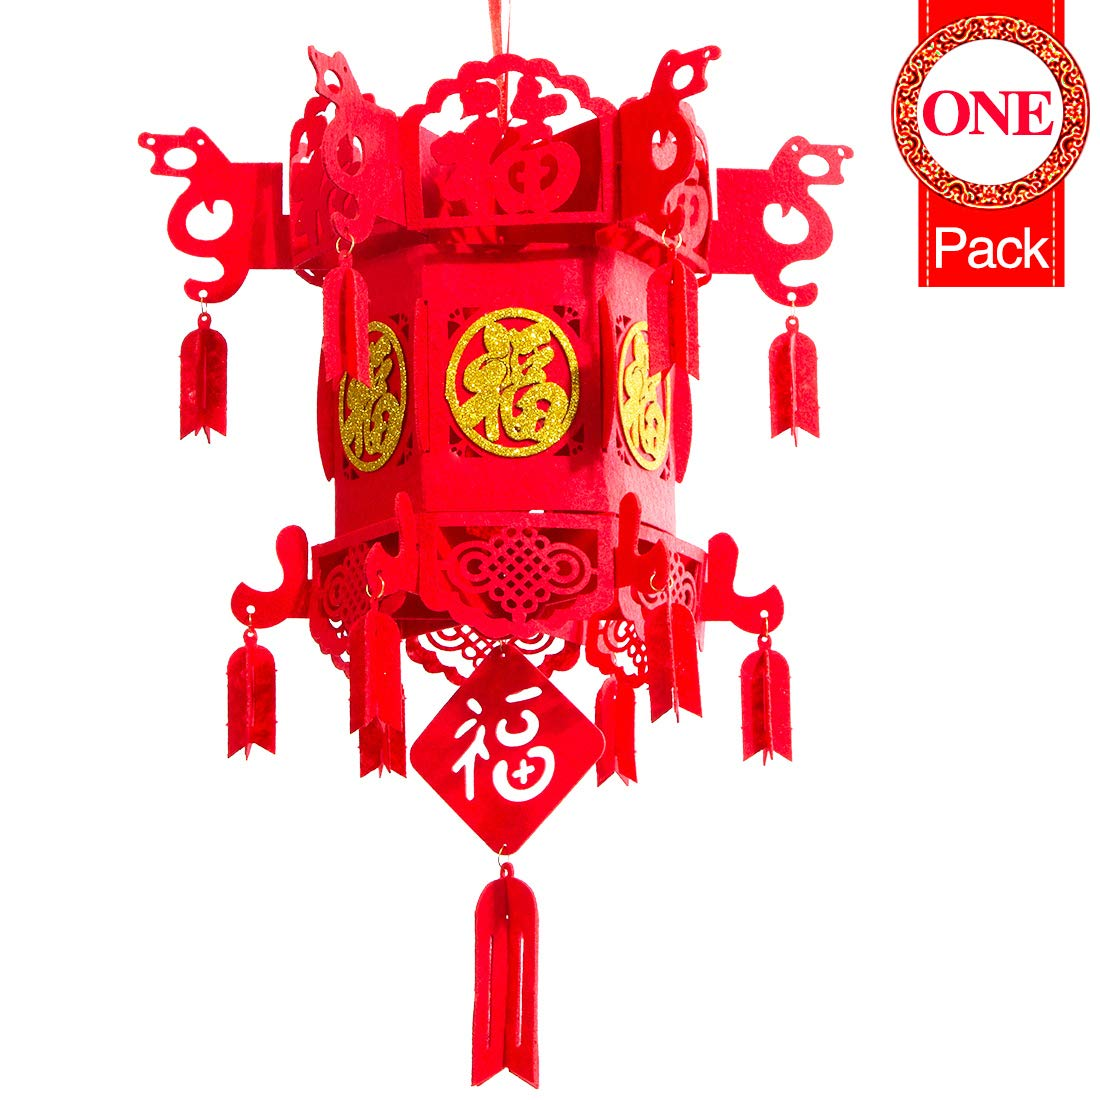 and Weddings 10/' Red Paper Lanterns Chinese New Year Lanterns Waterproof Hanging Lanterns for Spring Festivals Home Decor Holidays Parties